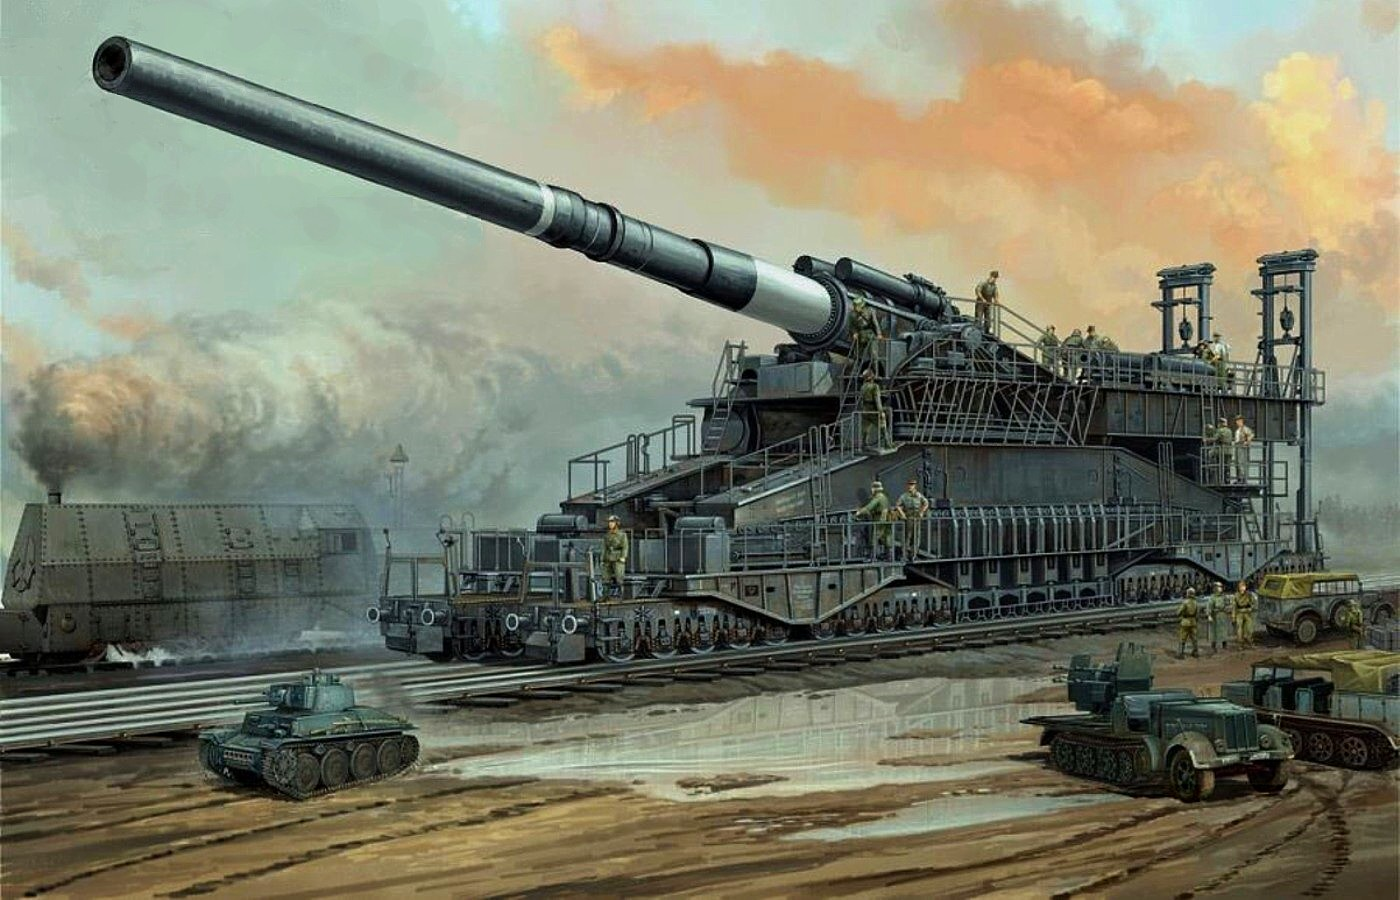 You Won't Believe But Germans Actually Built And Used This Monster Cannon In WWII